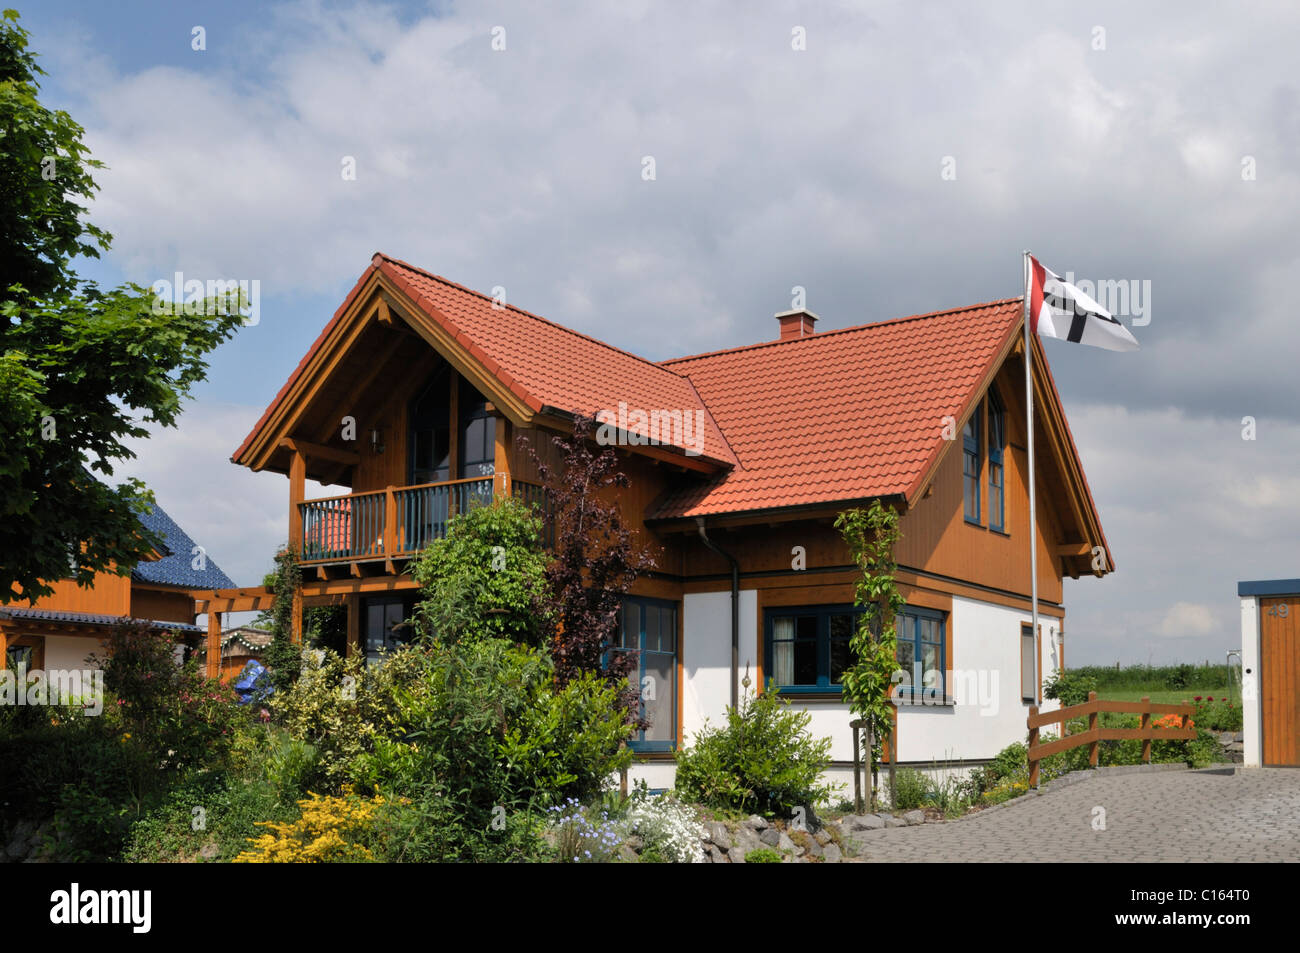 New building with with wooden elements, low energy house, Grafschaft, Rheinland-Palantine, Germany - Stock Image